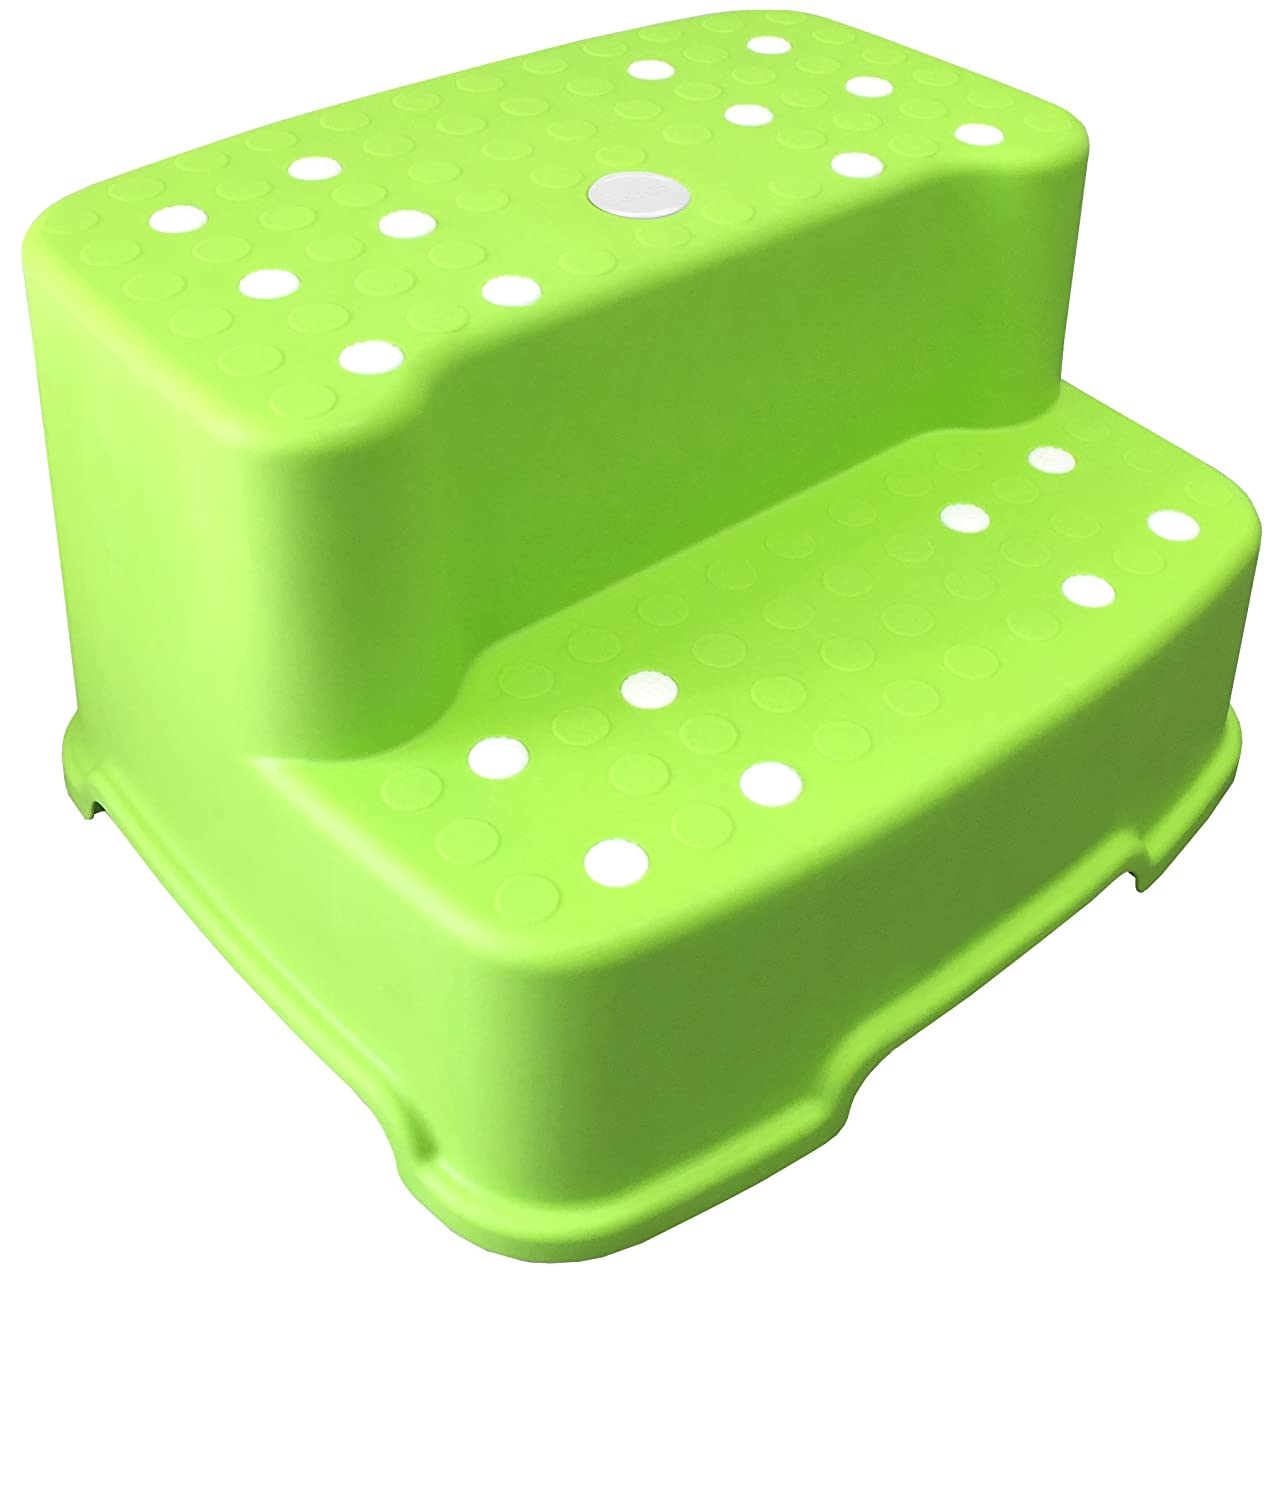 Amazon.com Tenby Living Extra-Wide Extra-Tall Jumbo Step Stool with Removable Non-Slip Caps and Rubber Grips Green Toys u0026 Games  sc 1 st  Amazon.com & Amazon.com: Tenby Living Extra-Wide Extra-Tall Jumbo Step Stool ... islam-shia.org